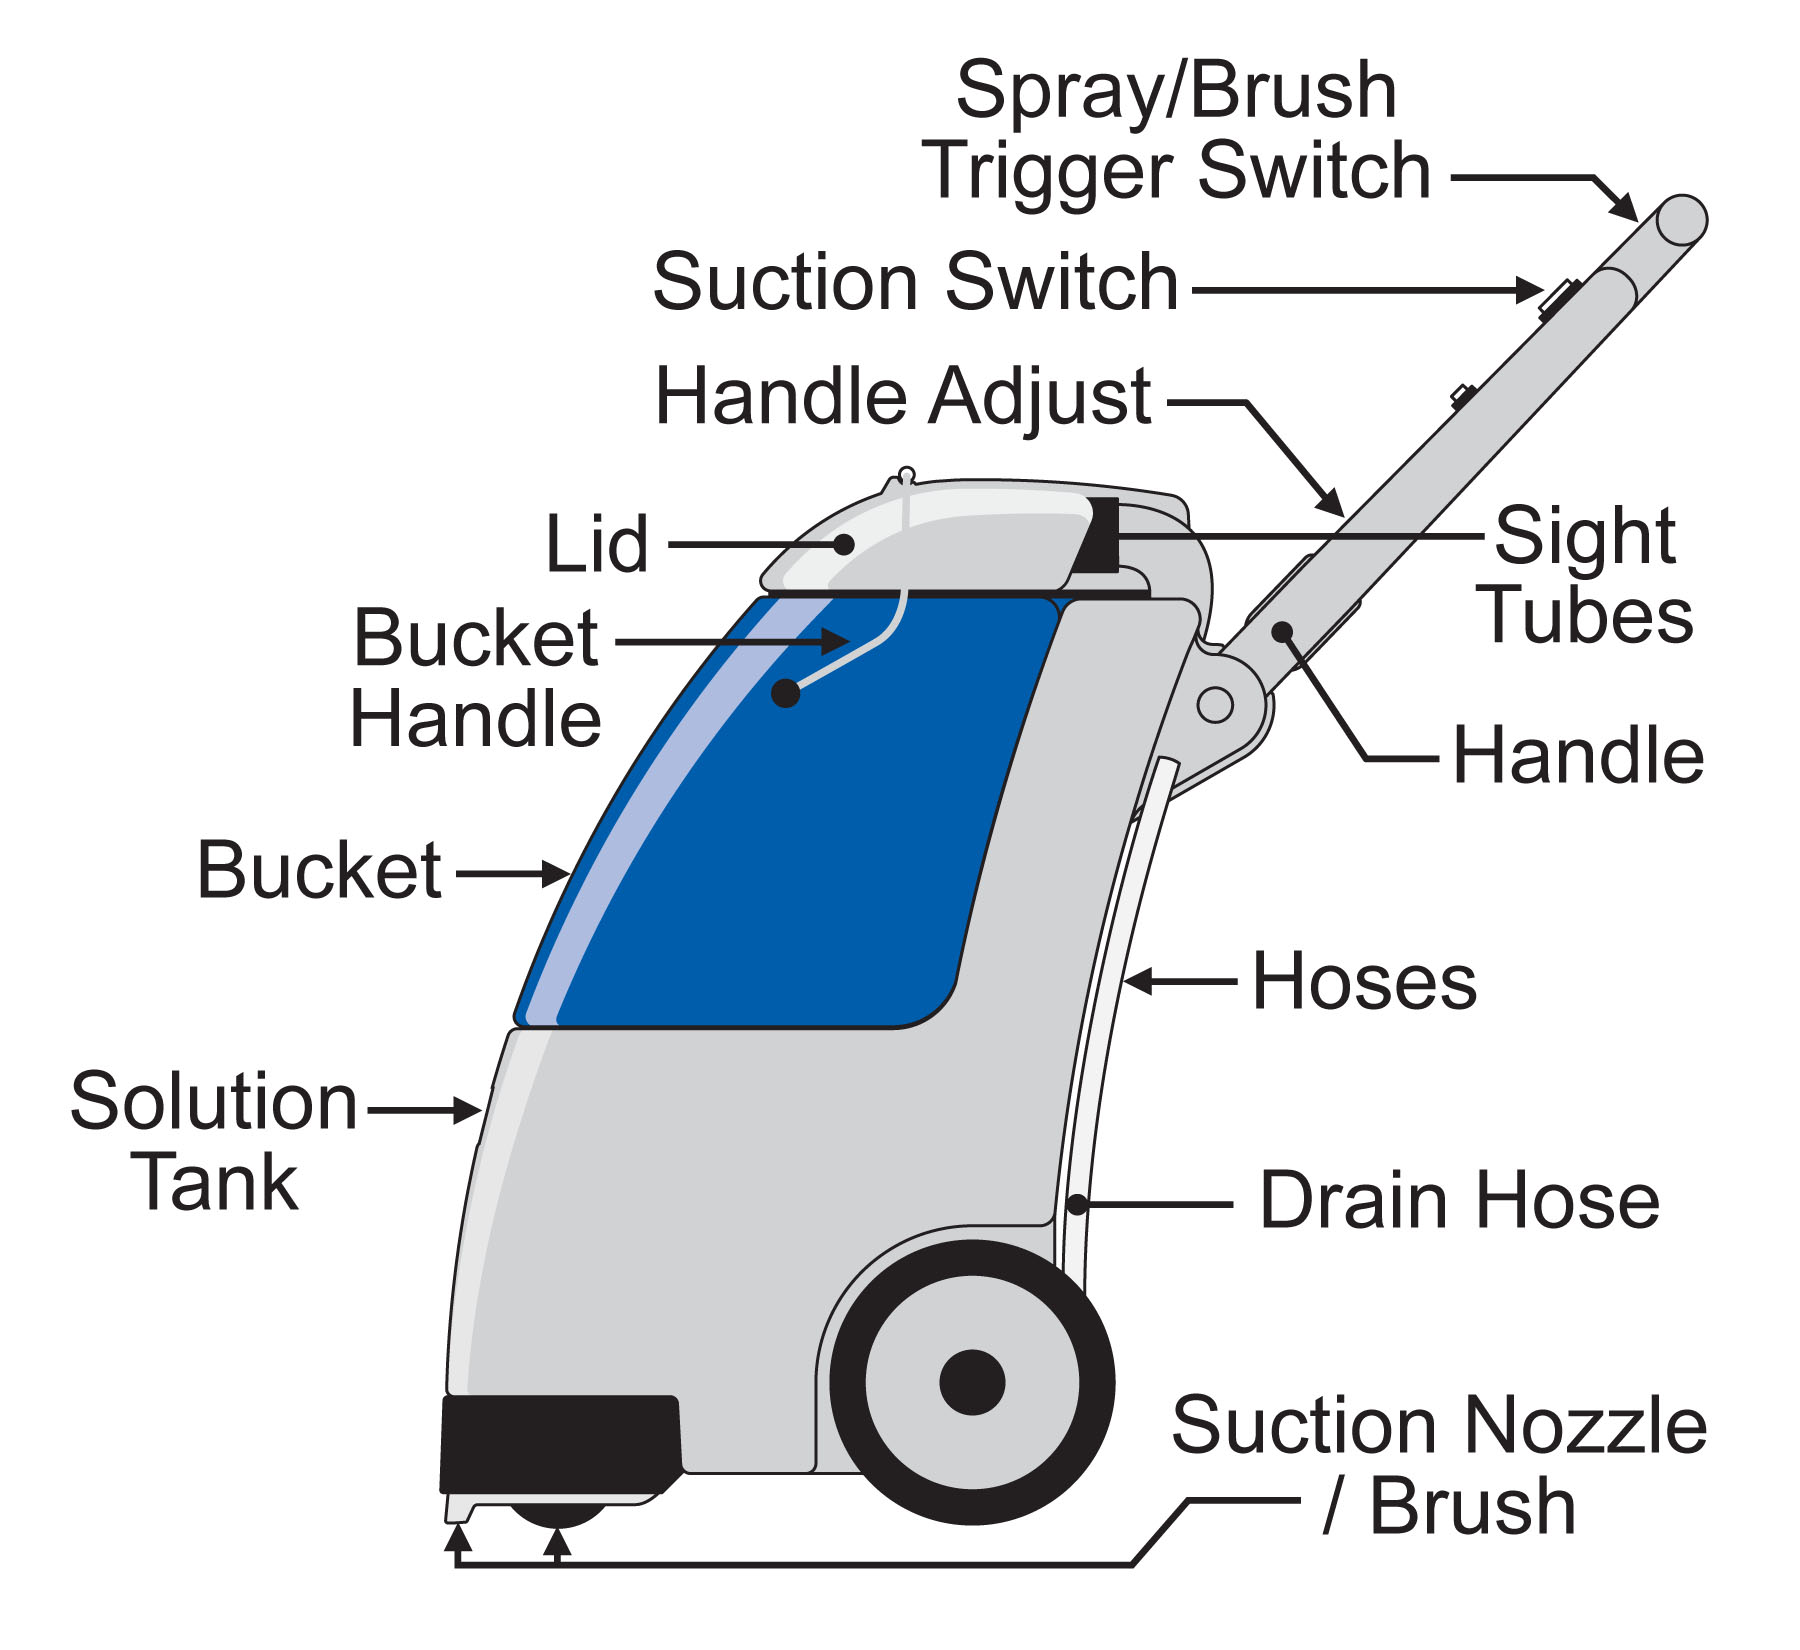 Rent Carpet Express How To Use Extractor Diagram And Parts List For Bissell Wetcarpetcleaner Clean Out The Vac Nozzle With A Hanger If Necessary